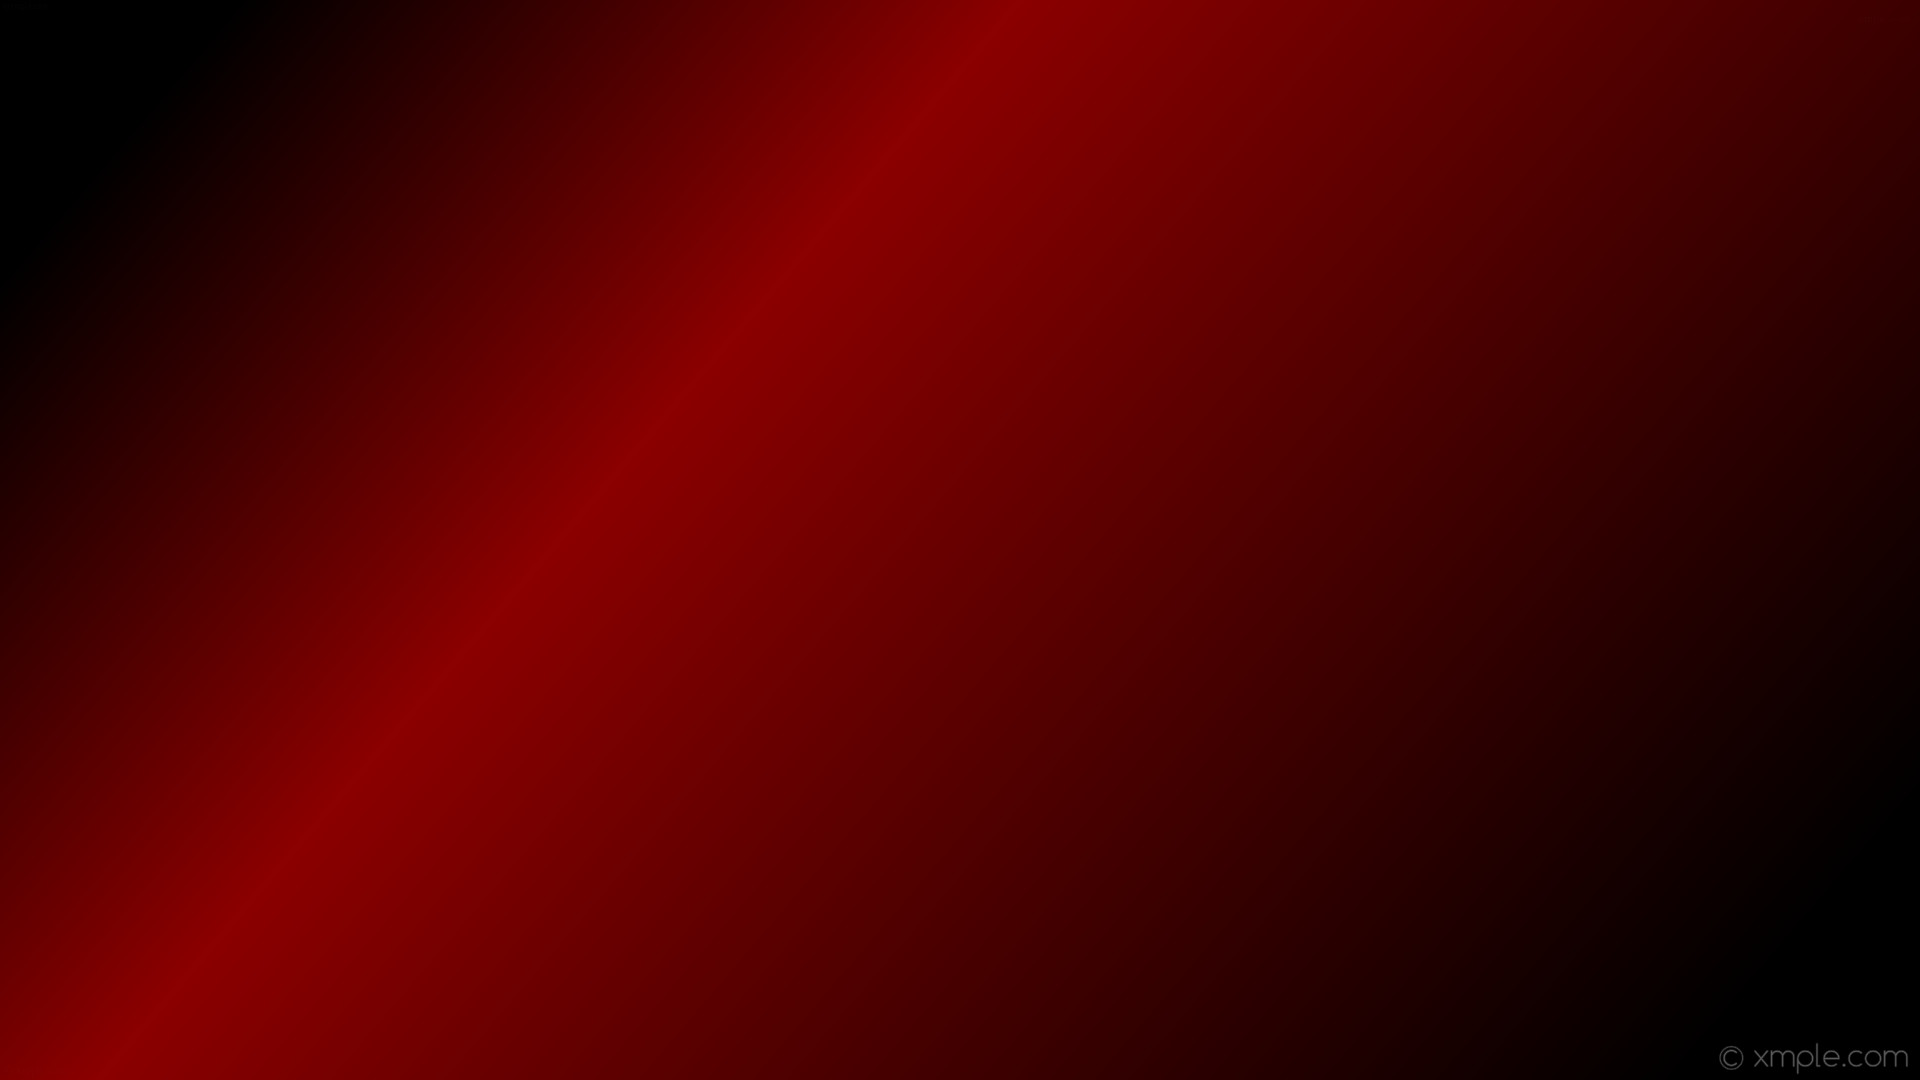 1920x1080 wallpaper highlight black red gradient linear dark red #000000 #8b0000 345°  67%